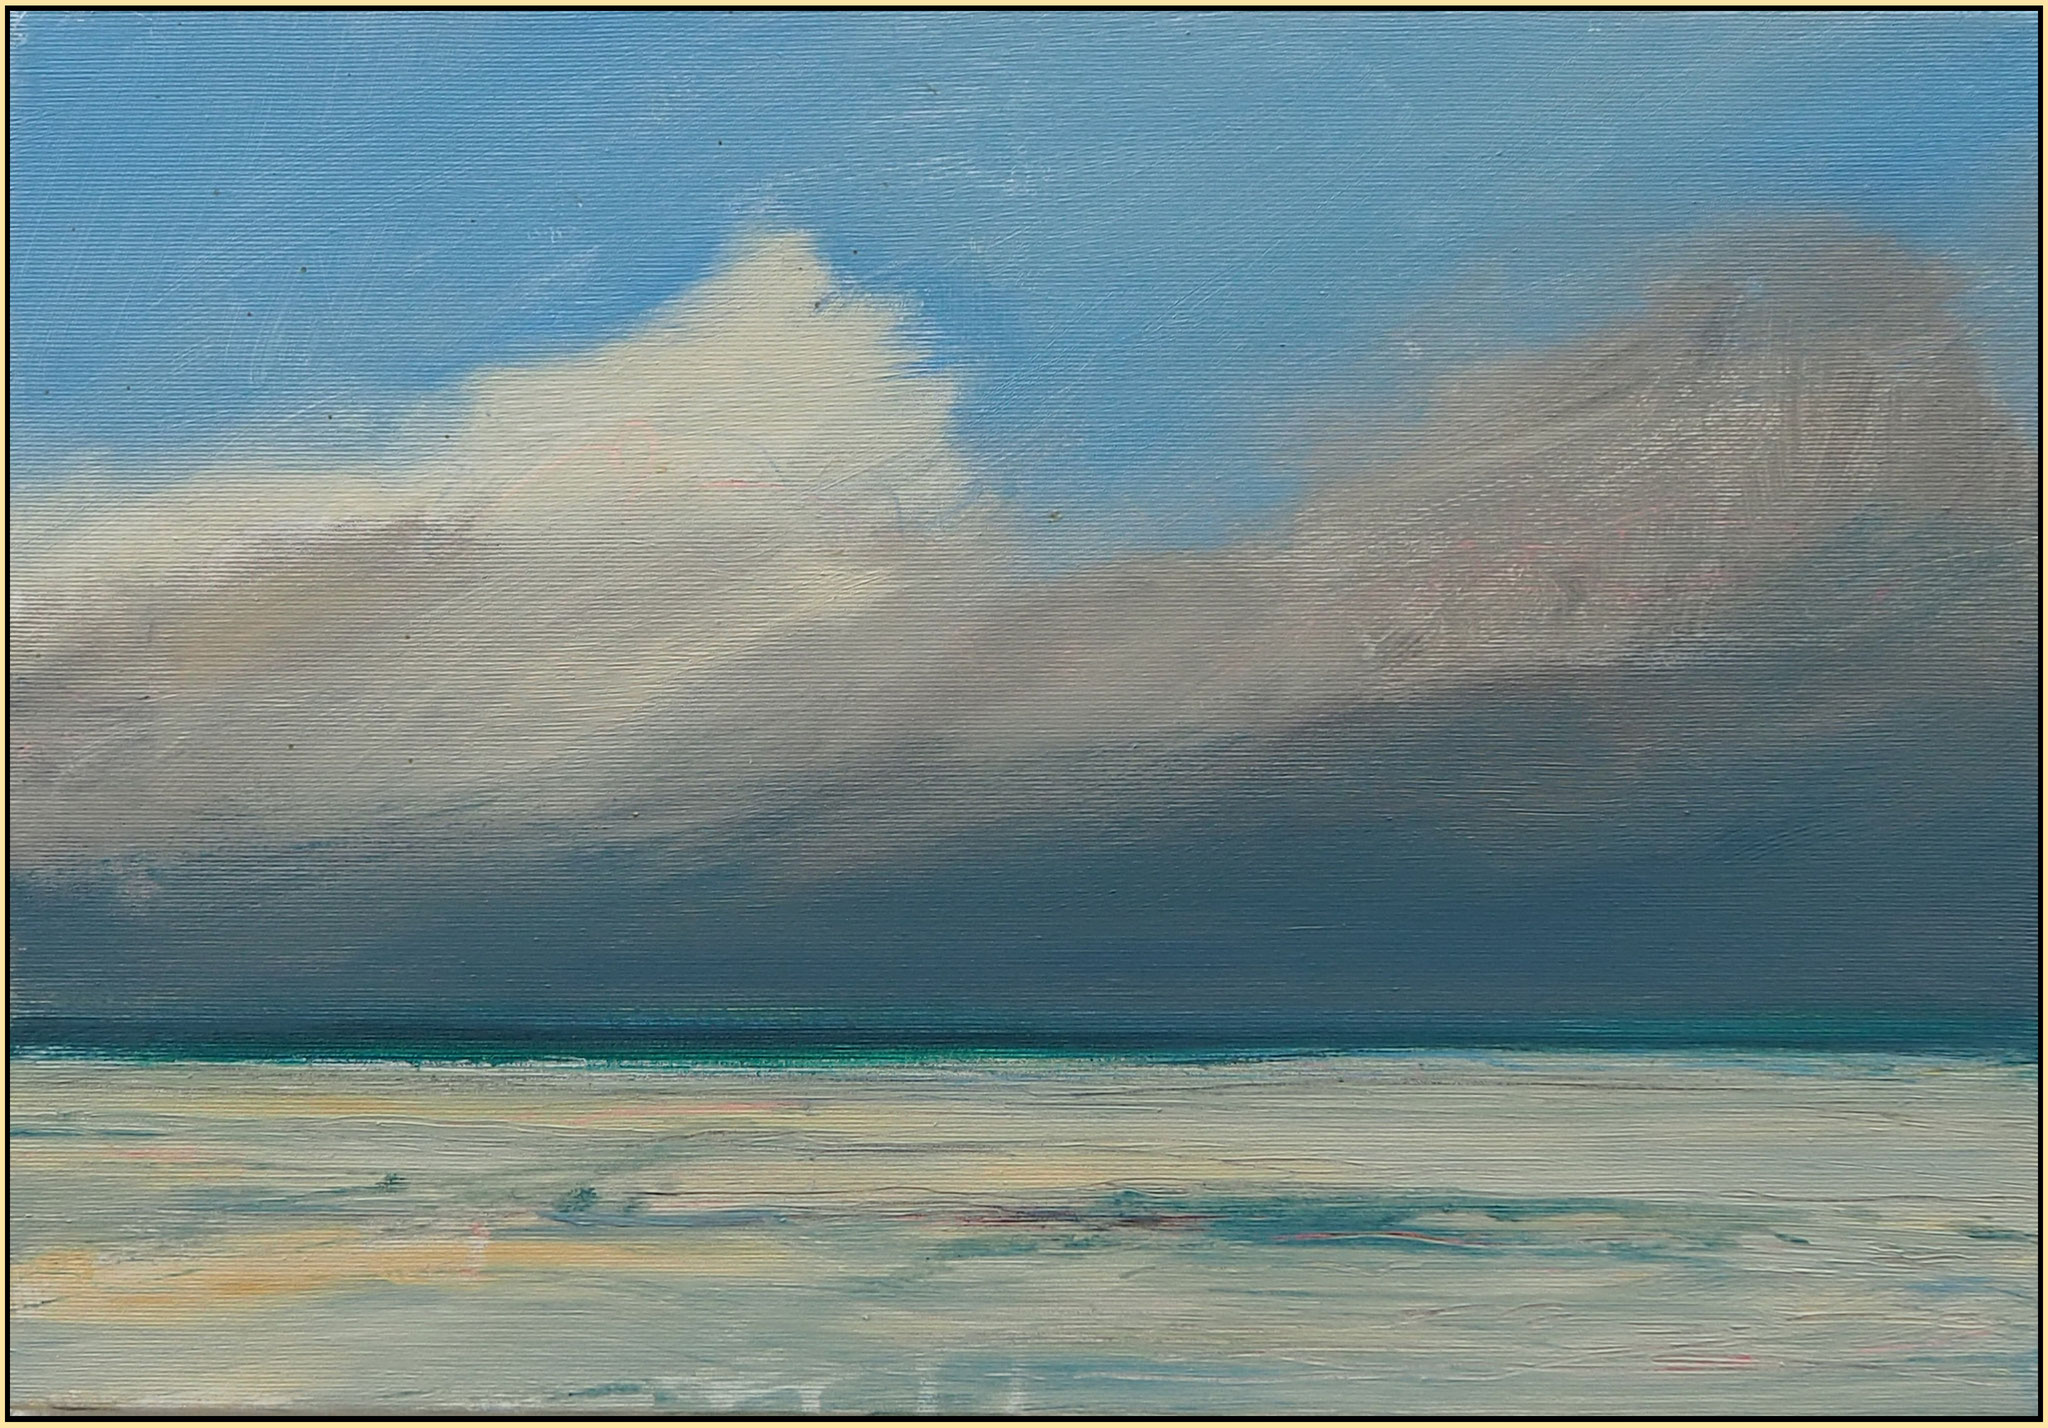 November beach 2020  acryl on canvas  38 cm / 55 cm